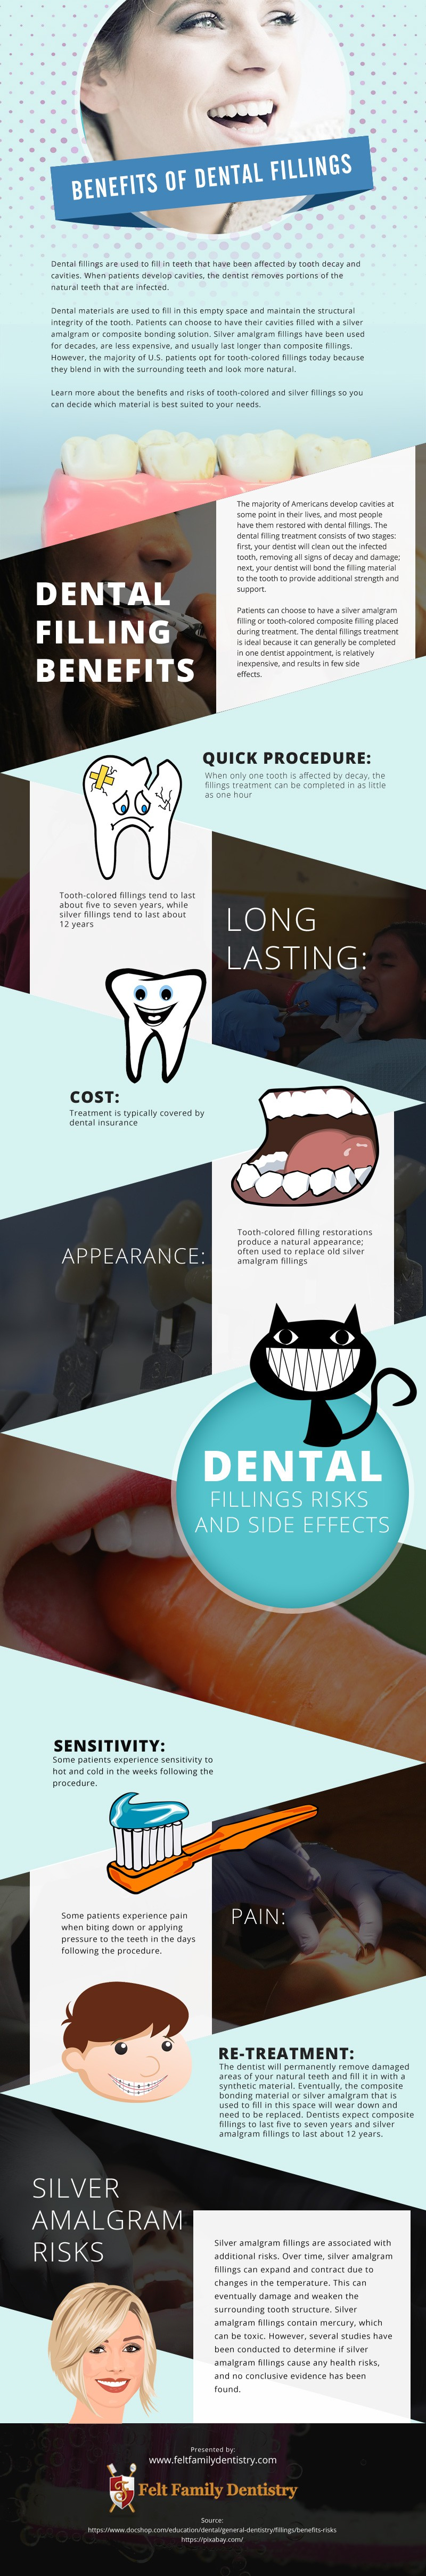 Benefits of Dental Fillings